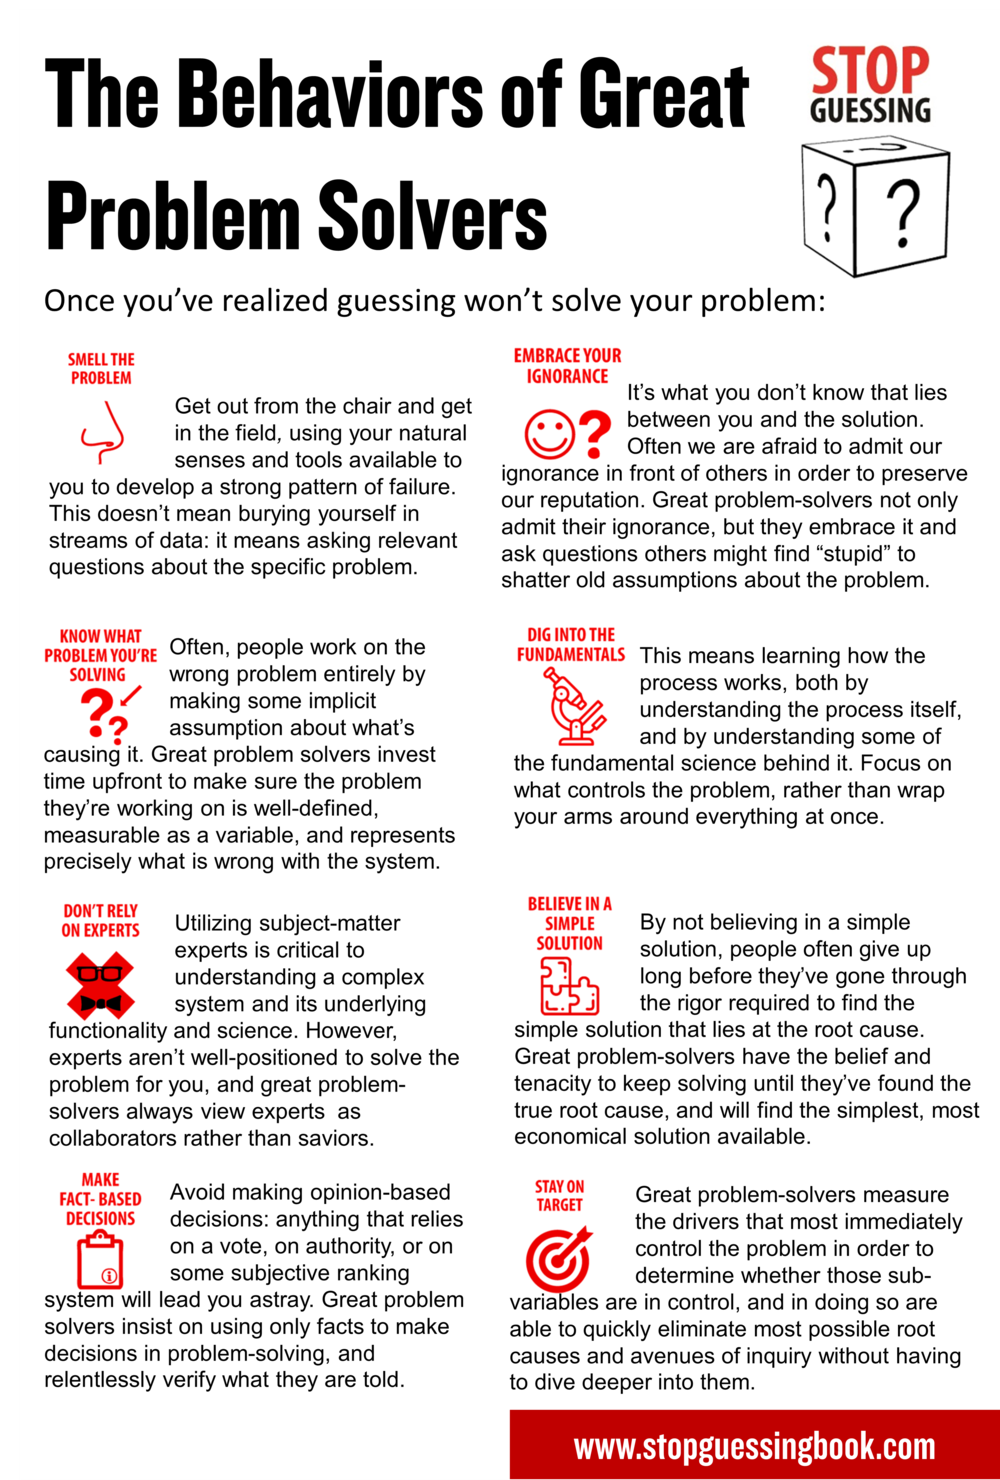 Stop Guessing Behaviors Poster